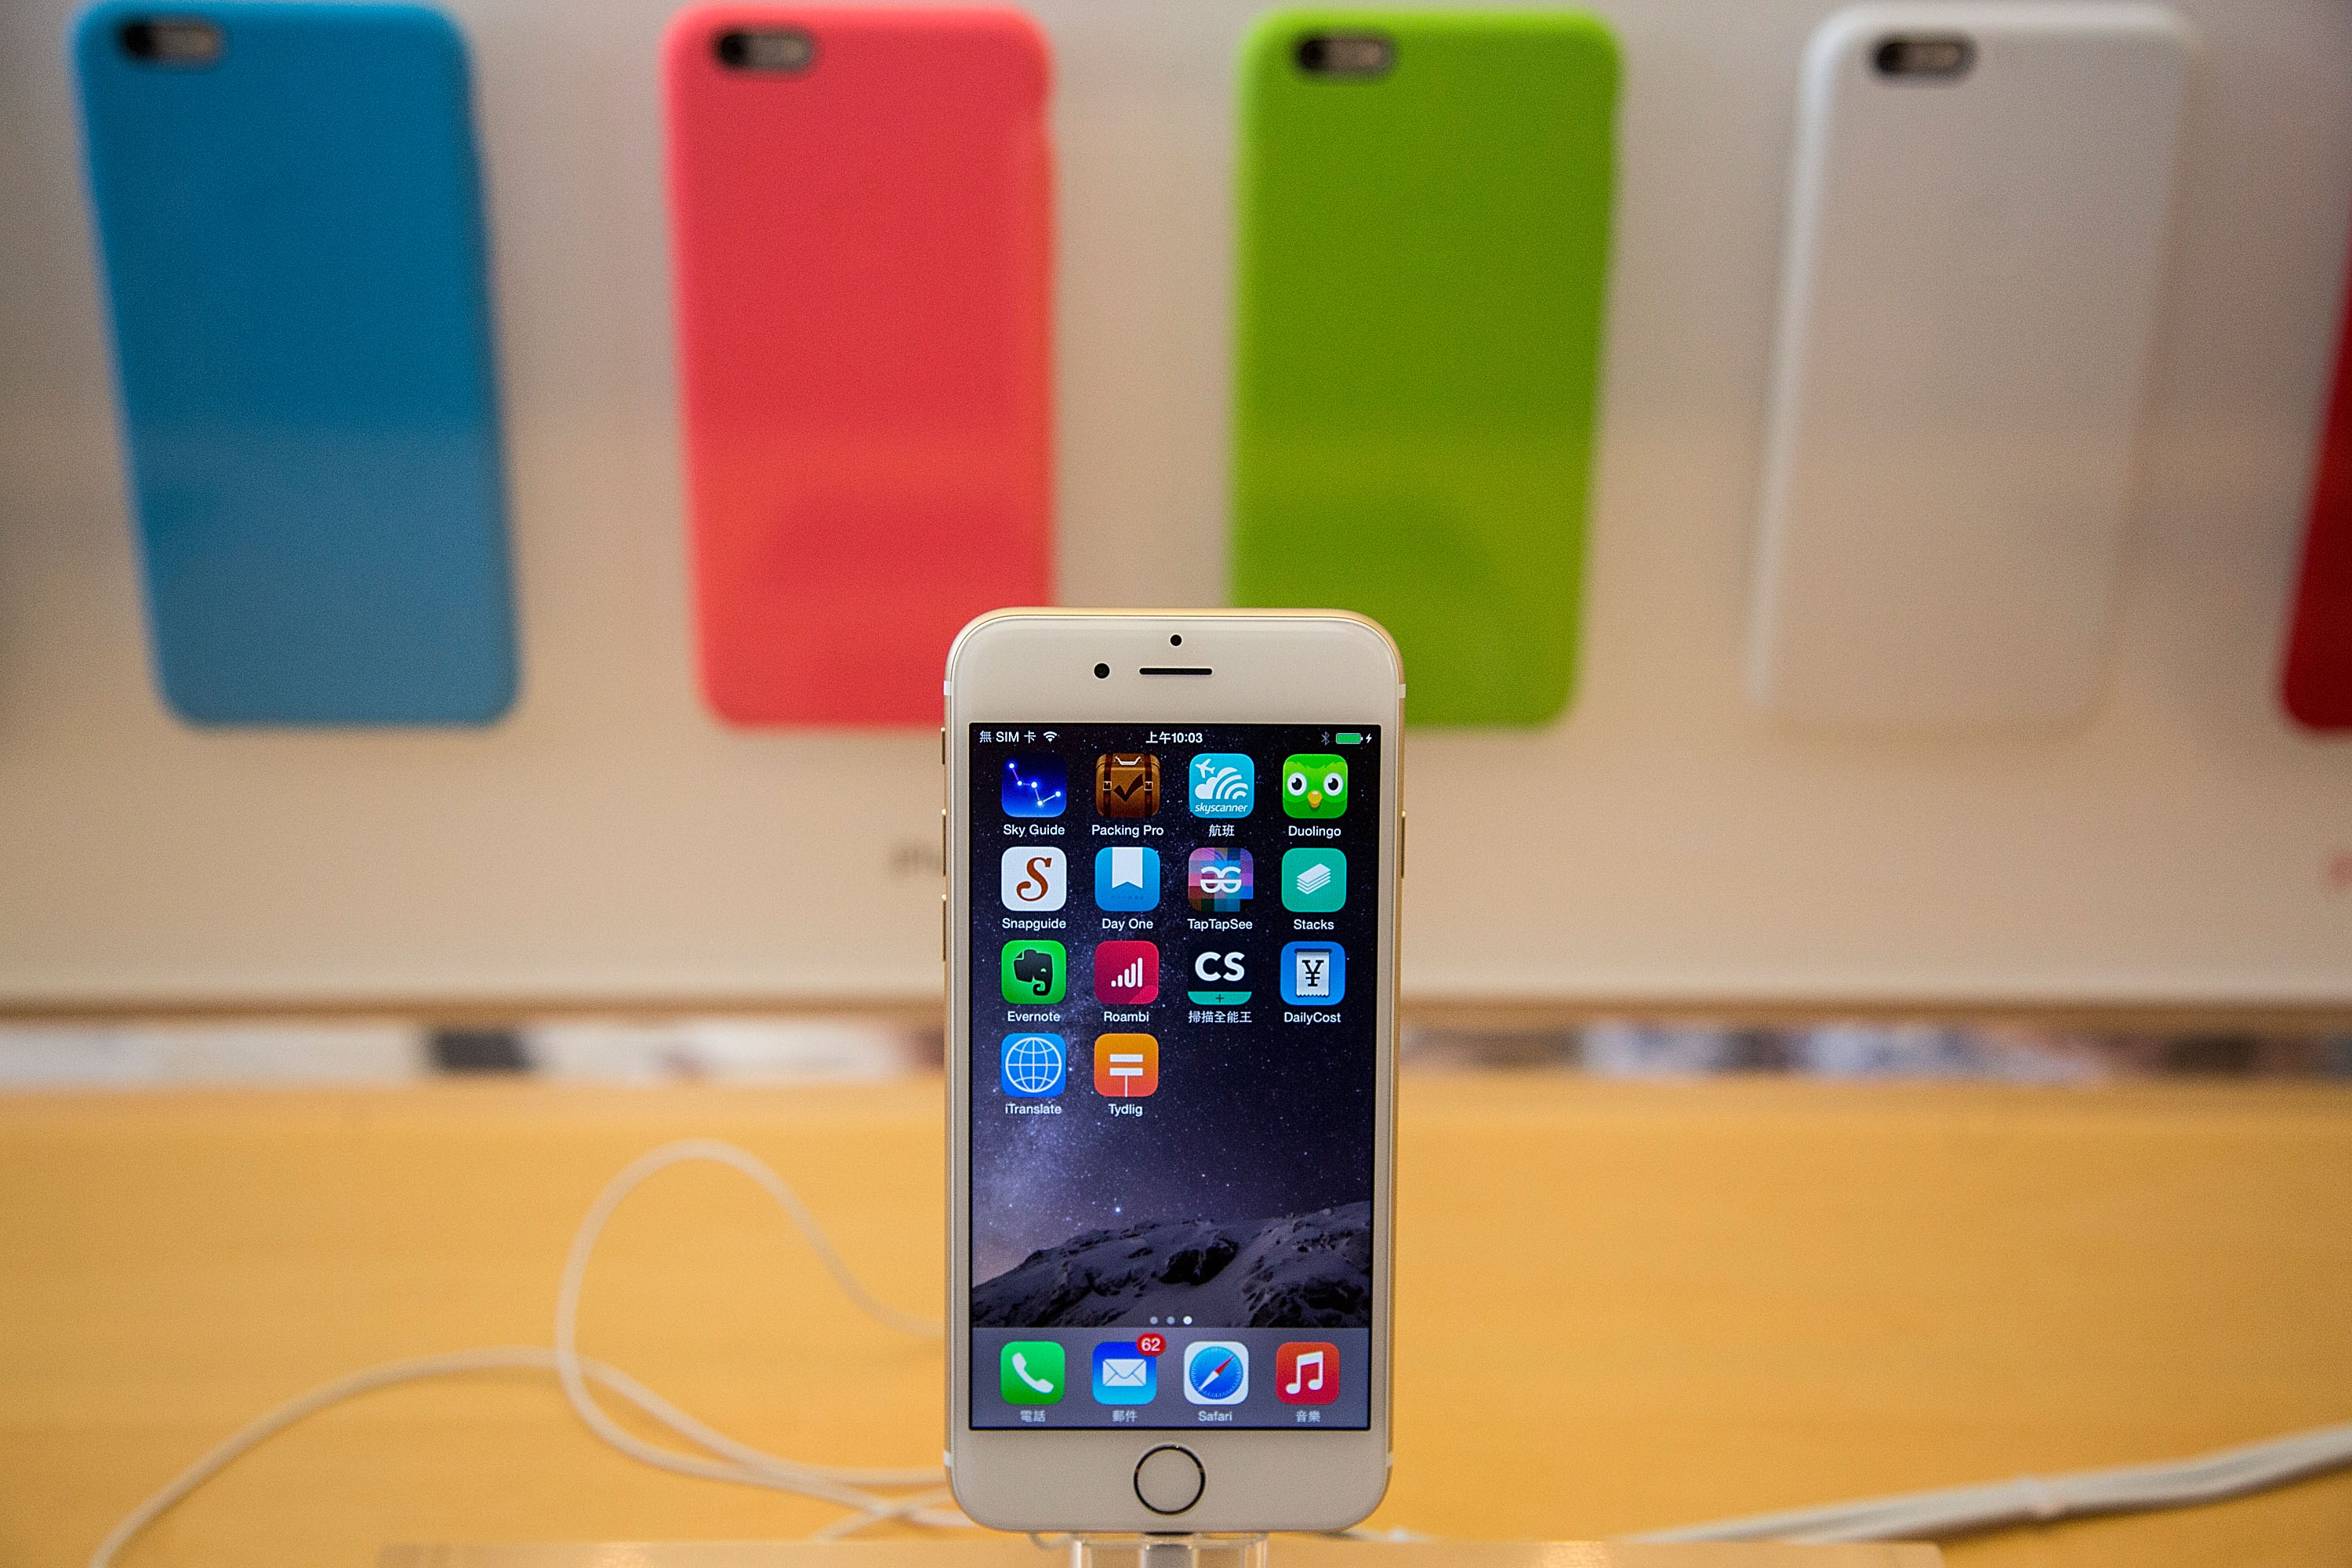 iPhone 6 Becomes Available In Hong Kong